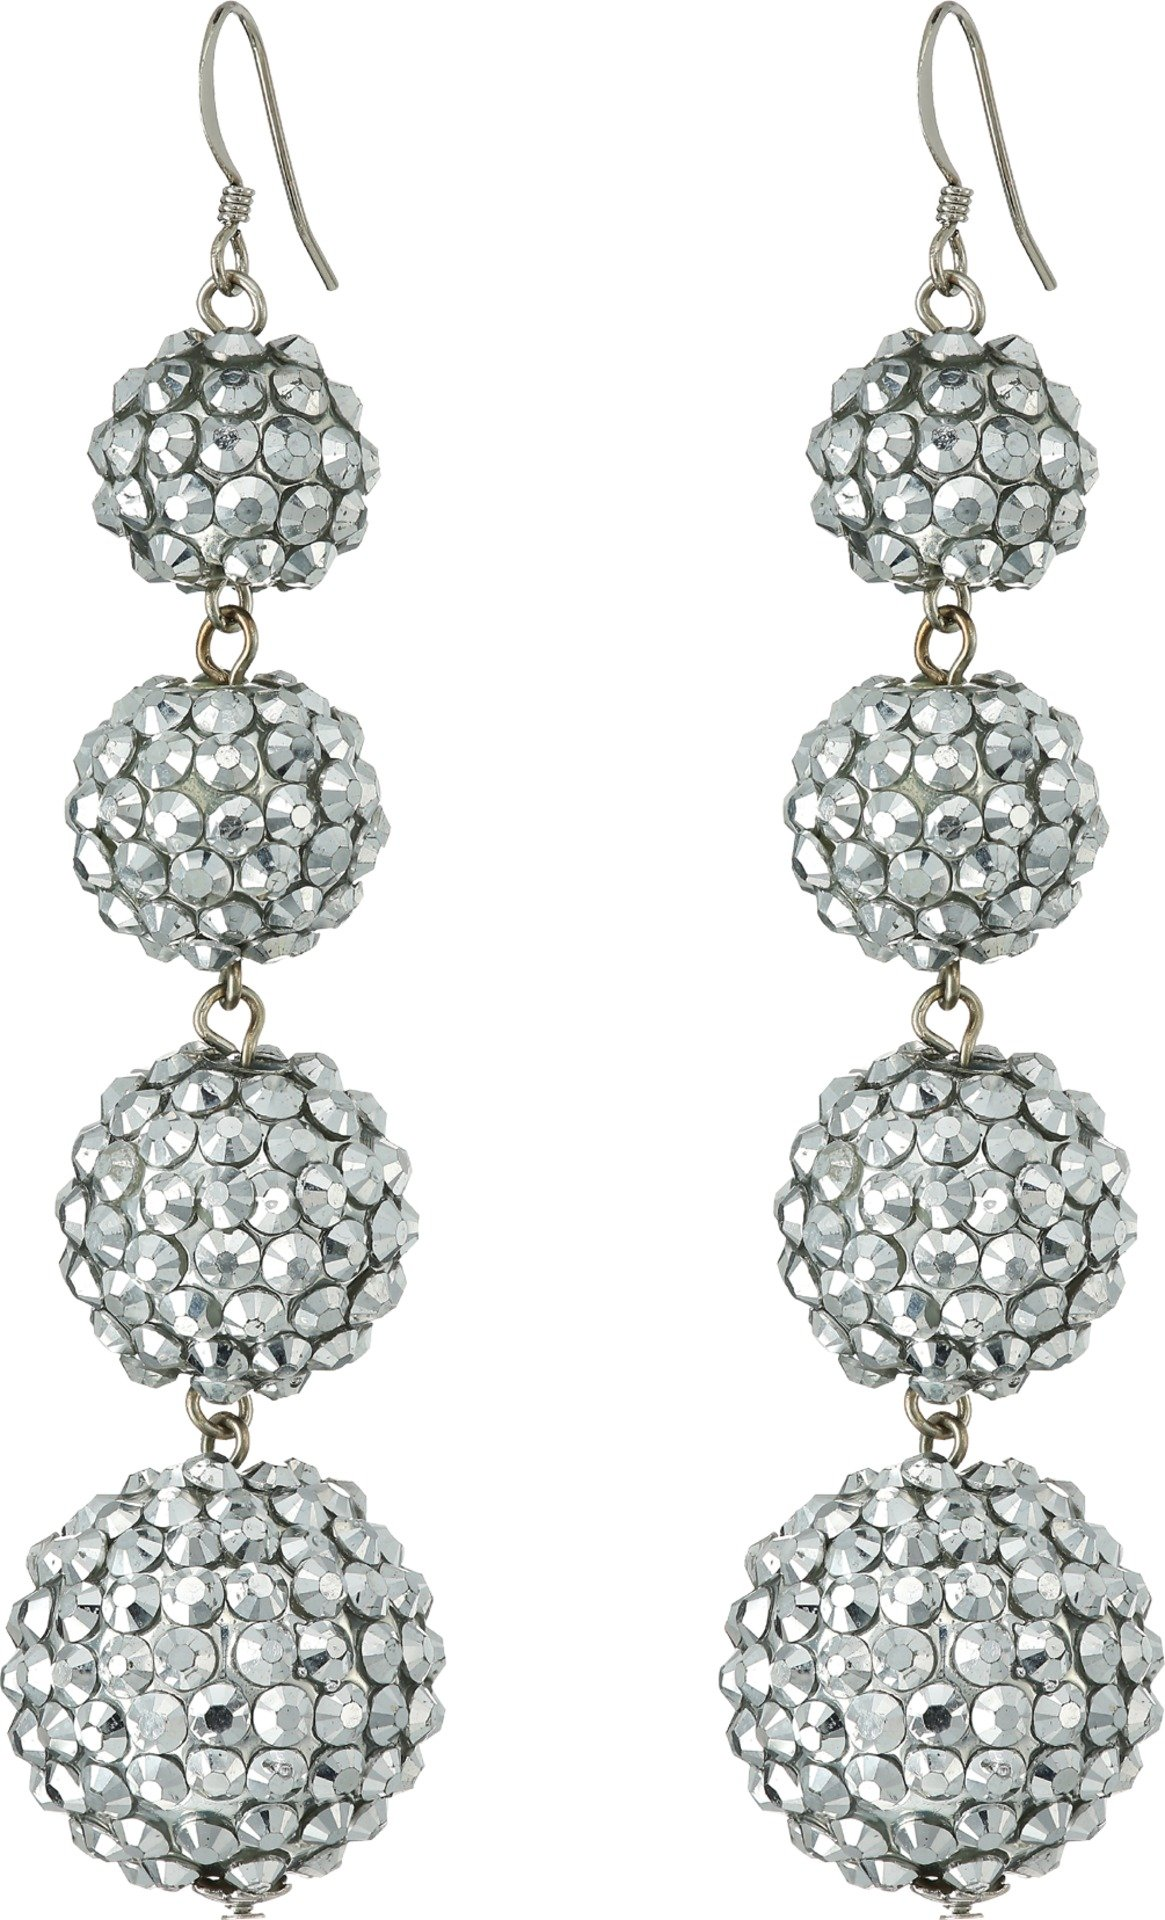 Kenneth Jay Lane Women's Graduated 4 Ball Sparkly Crystal Fish Hook Top Ear Earrings Crystal One Size